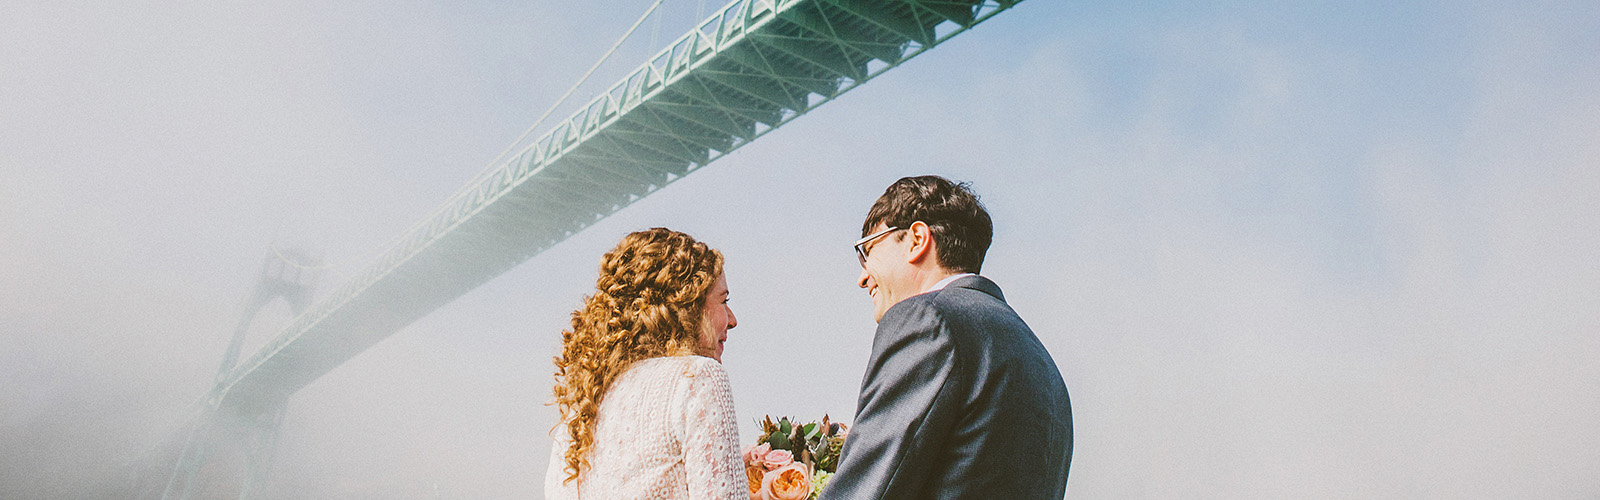 Portland wedding photographer reviews - Eleanor and Max's Cathedral Park Wedding